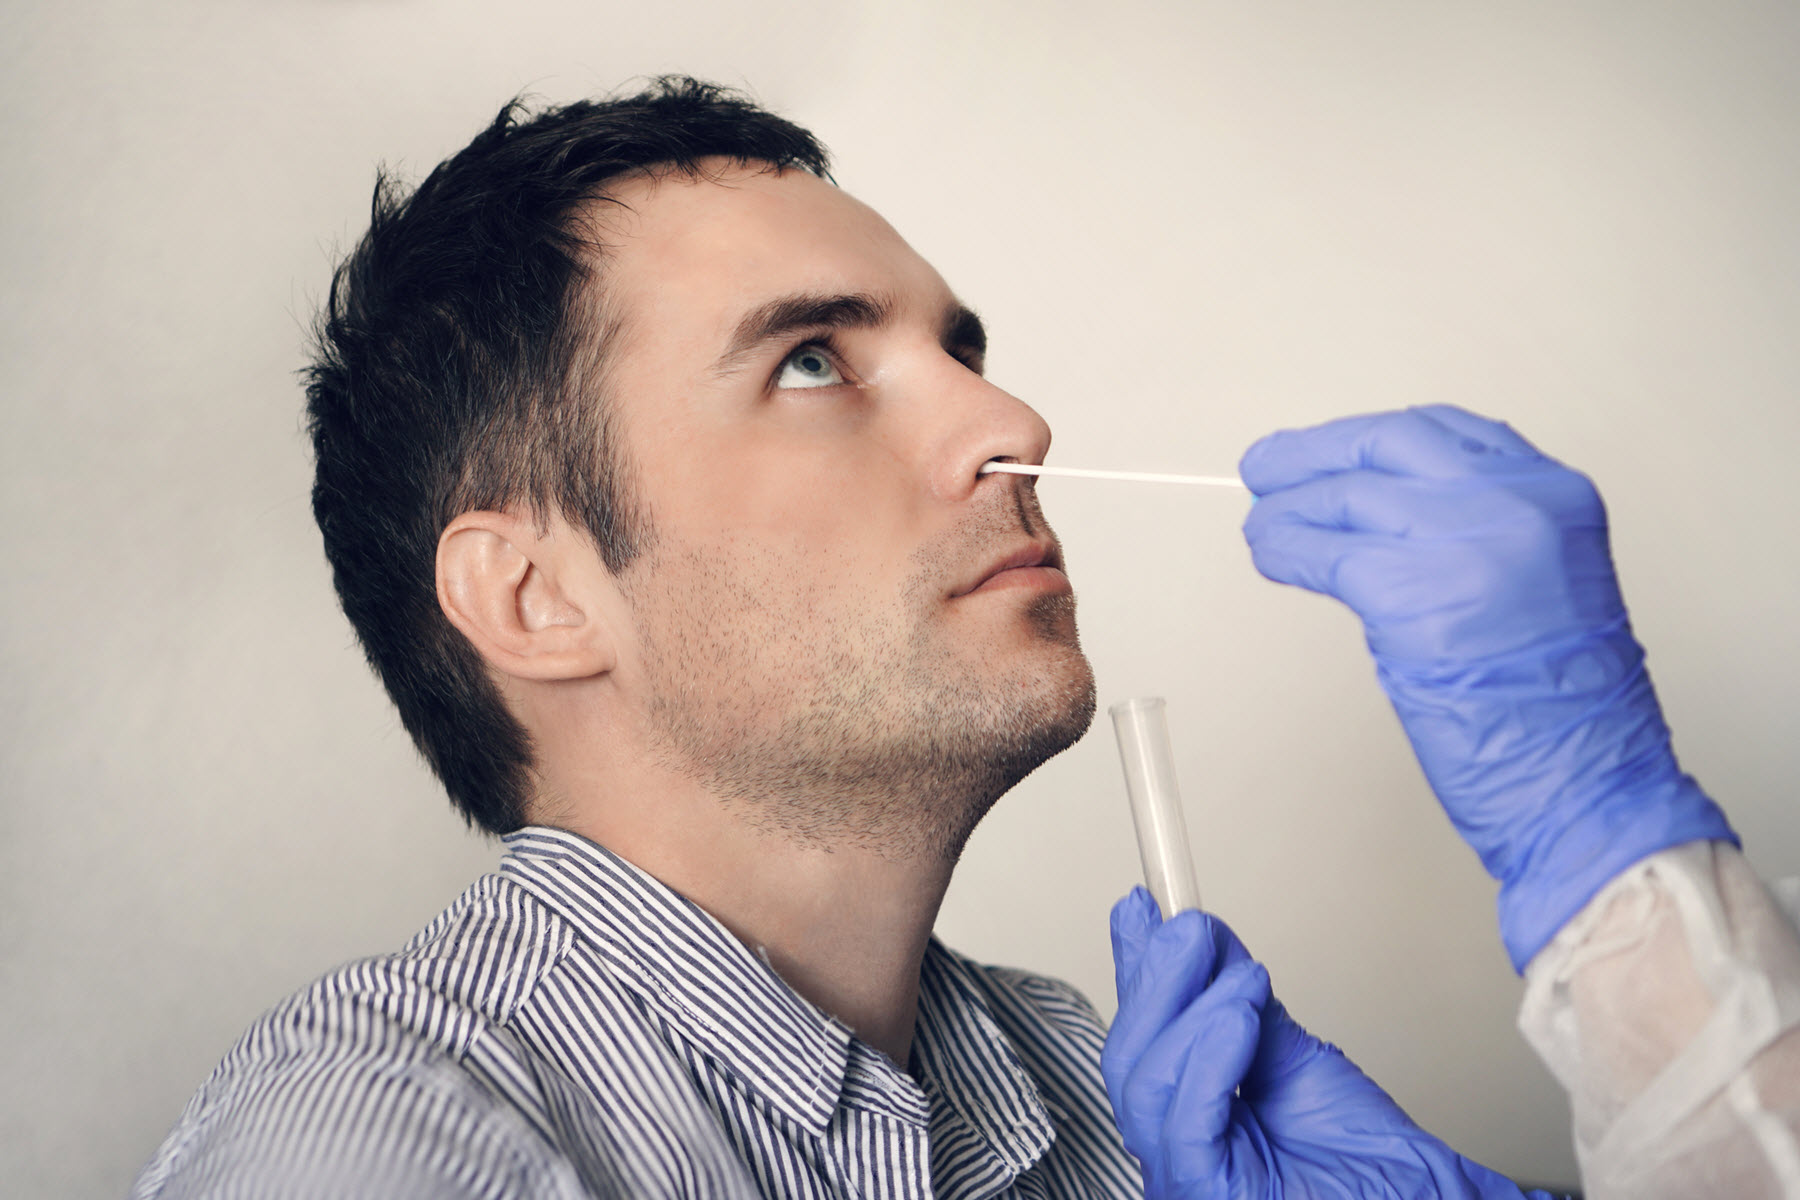 Saliva Equals Nasal Swab for COVID Test Accuracy